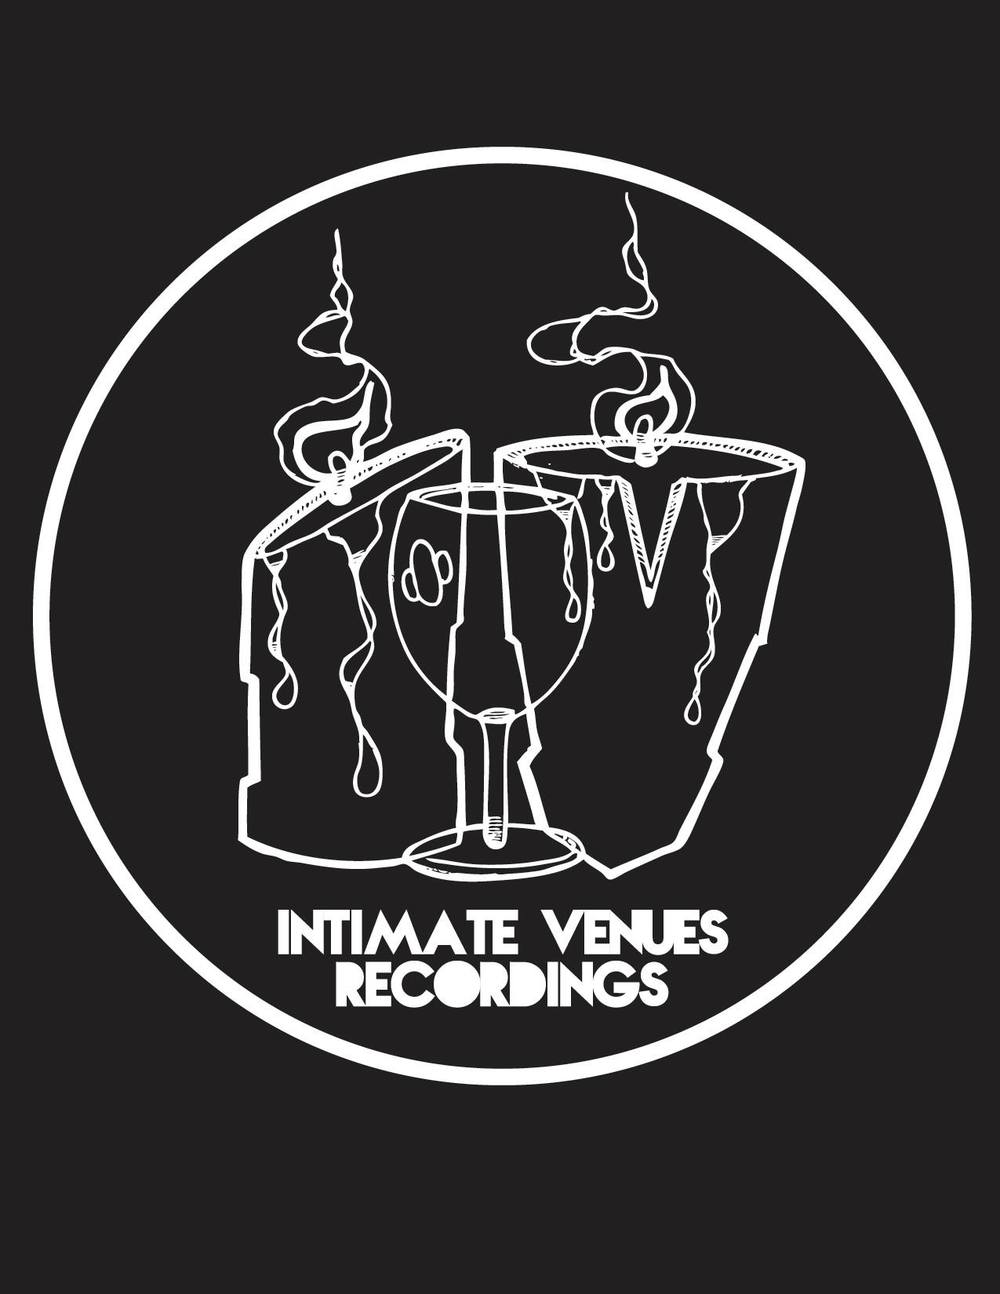 Intimate Venues Recordings logo designed by Cedric Umoja